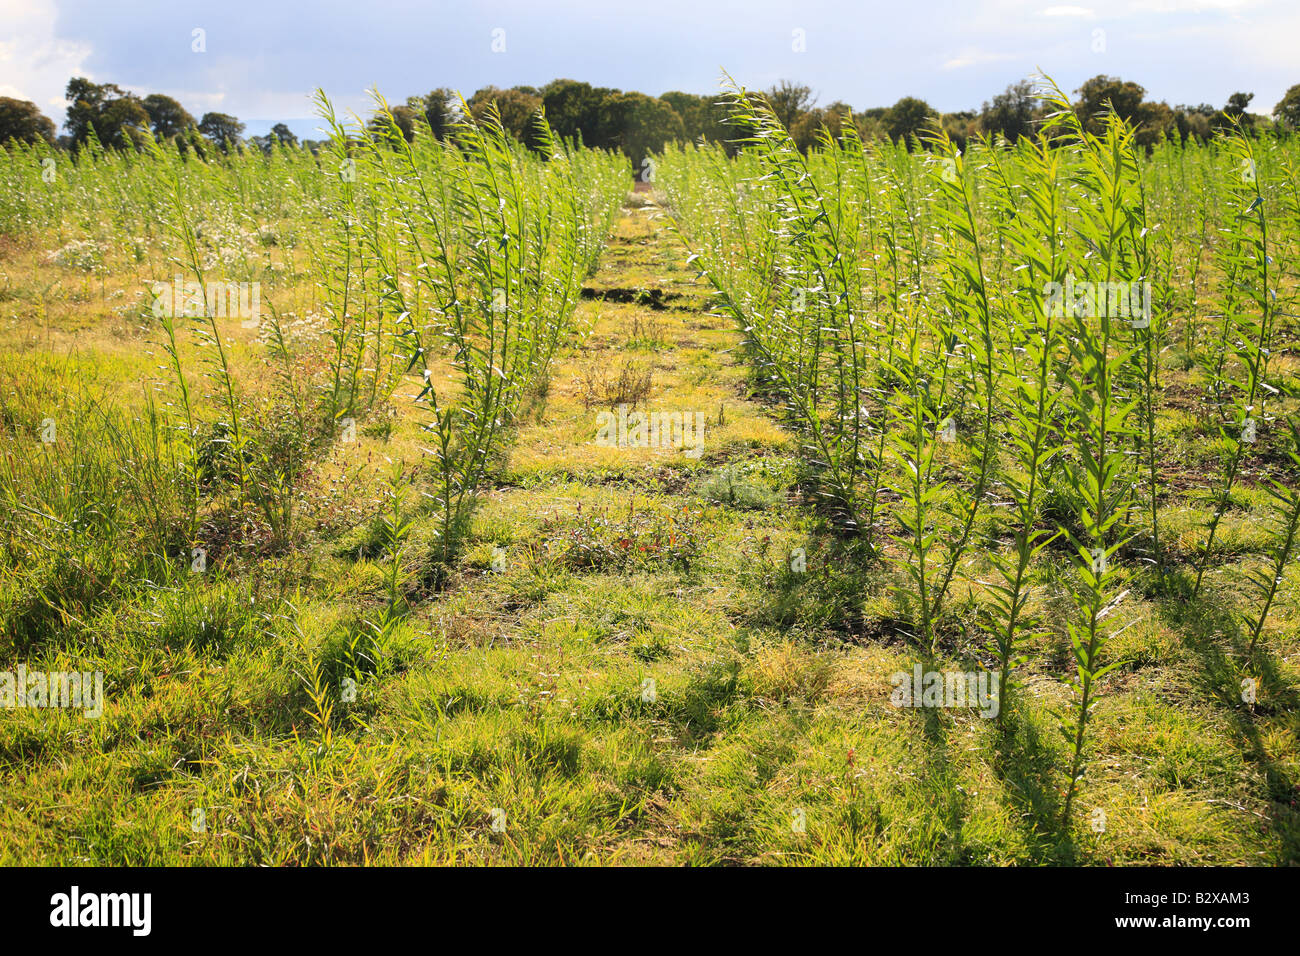 Willow Coppice Plantation field being grown for bio fuel near Carlisle, Cumbria, England, United Kingdom. - Stock Image